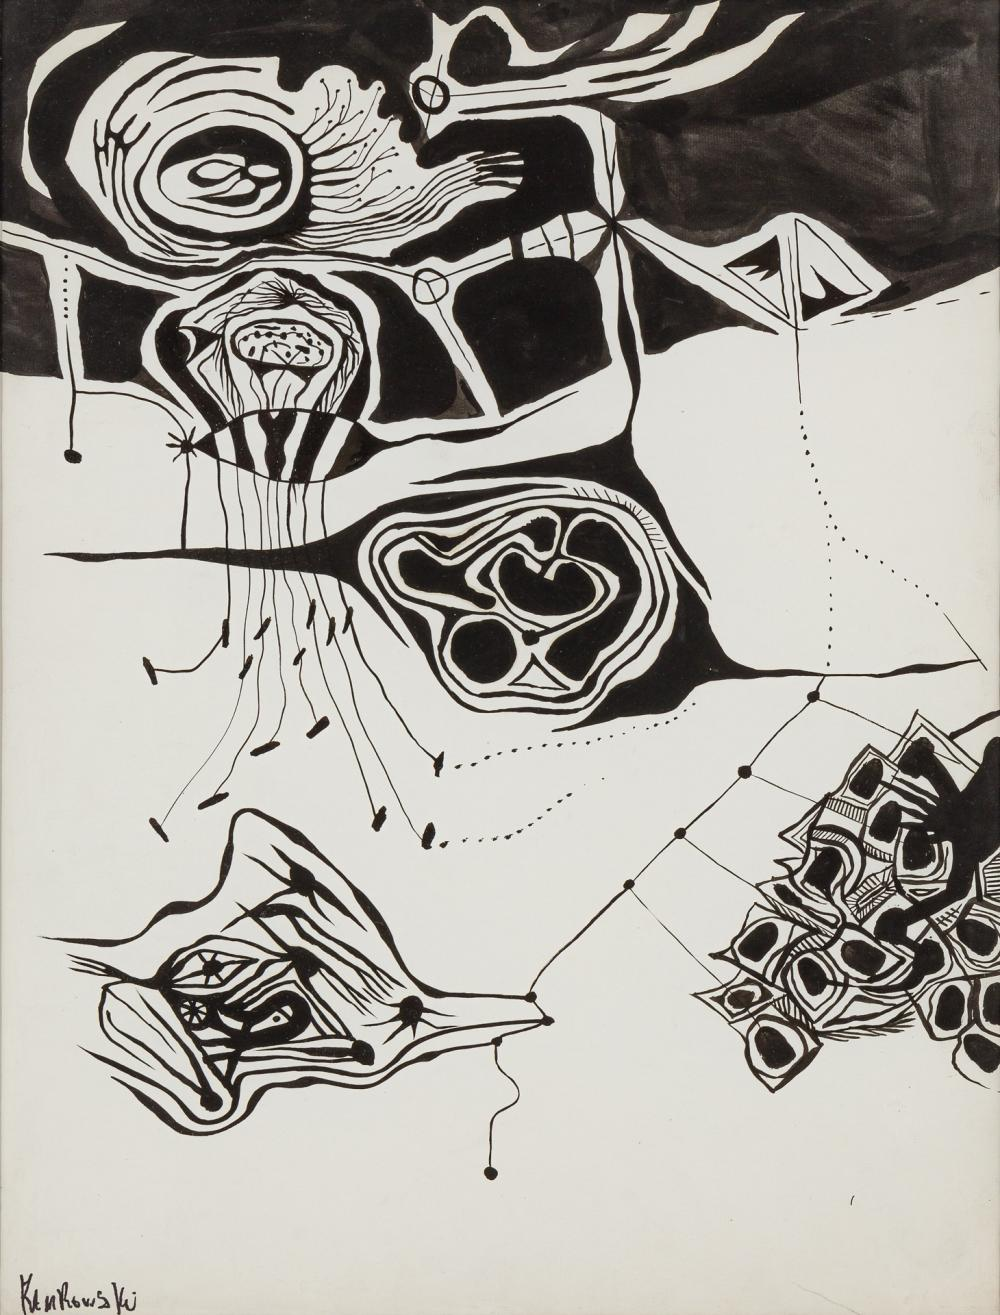 GEROME KAMROWSKI, American (1914-2004), Untitled, ink on paper, 24 1/2 x 18 5/8 inches (sight)